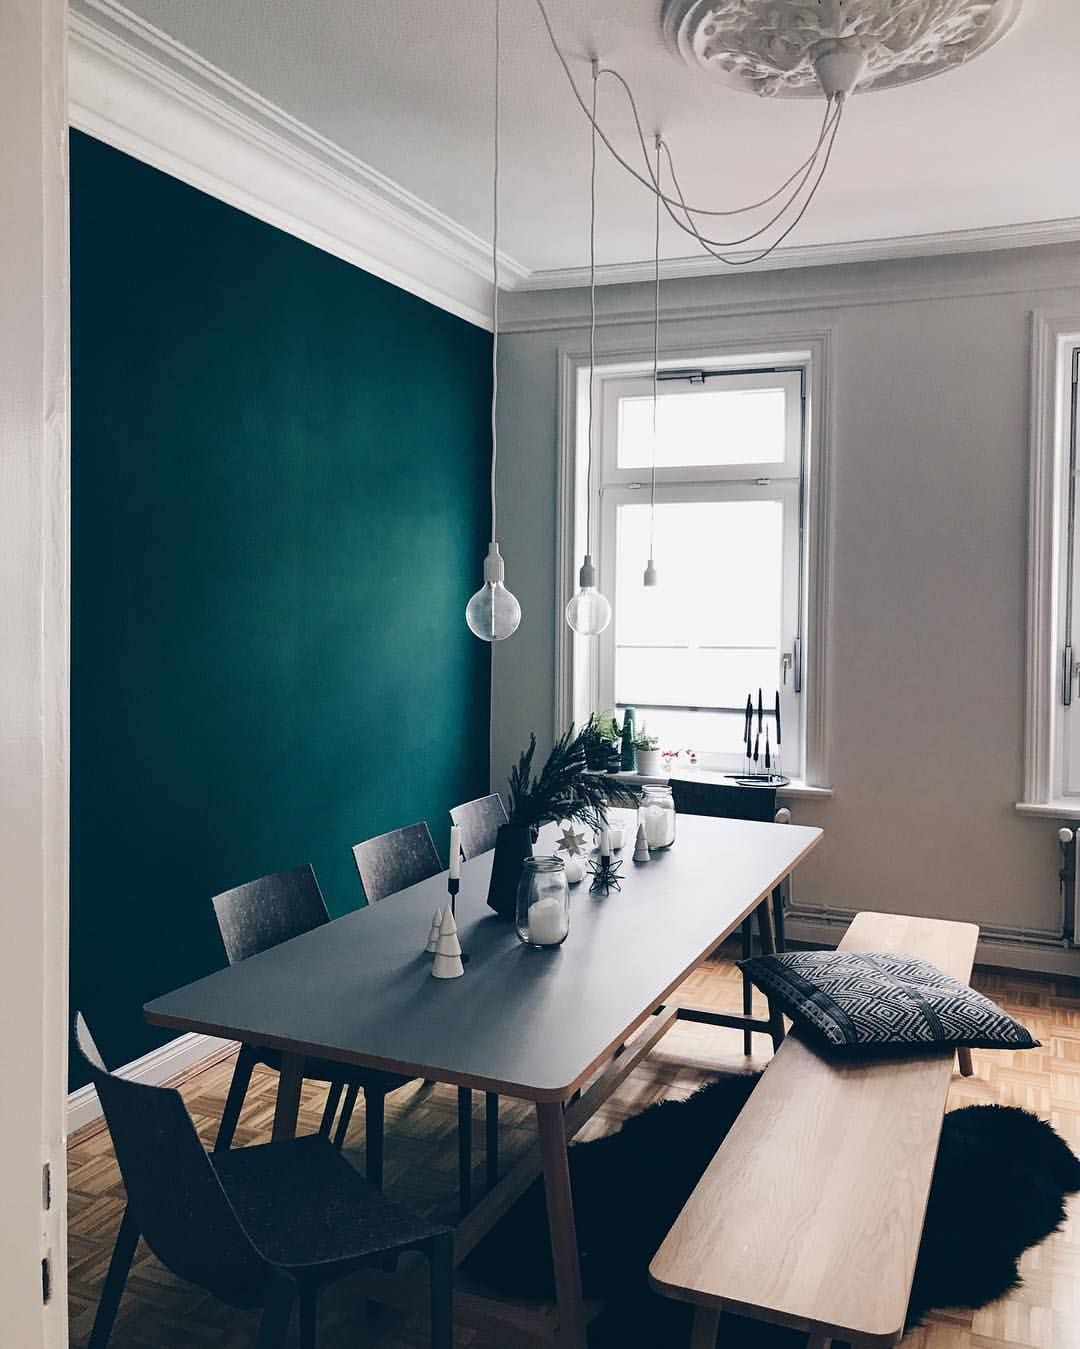 Love the color of this wall together with light from windows home interior decor paint dining room also abstract art colorful woman portrait print digital rh pinterest